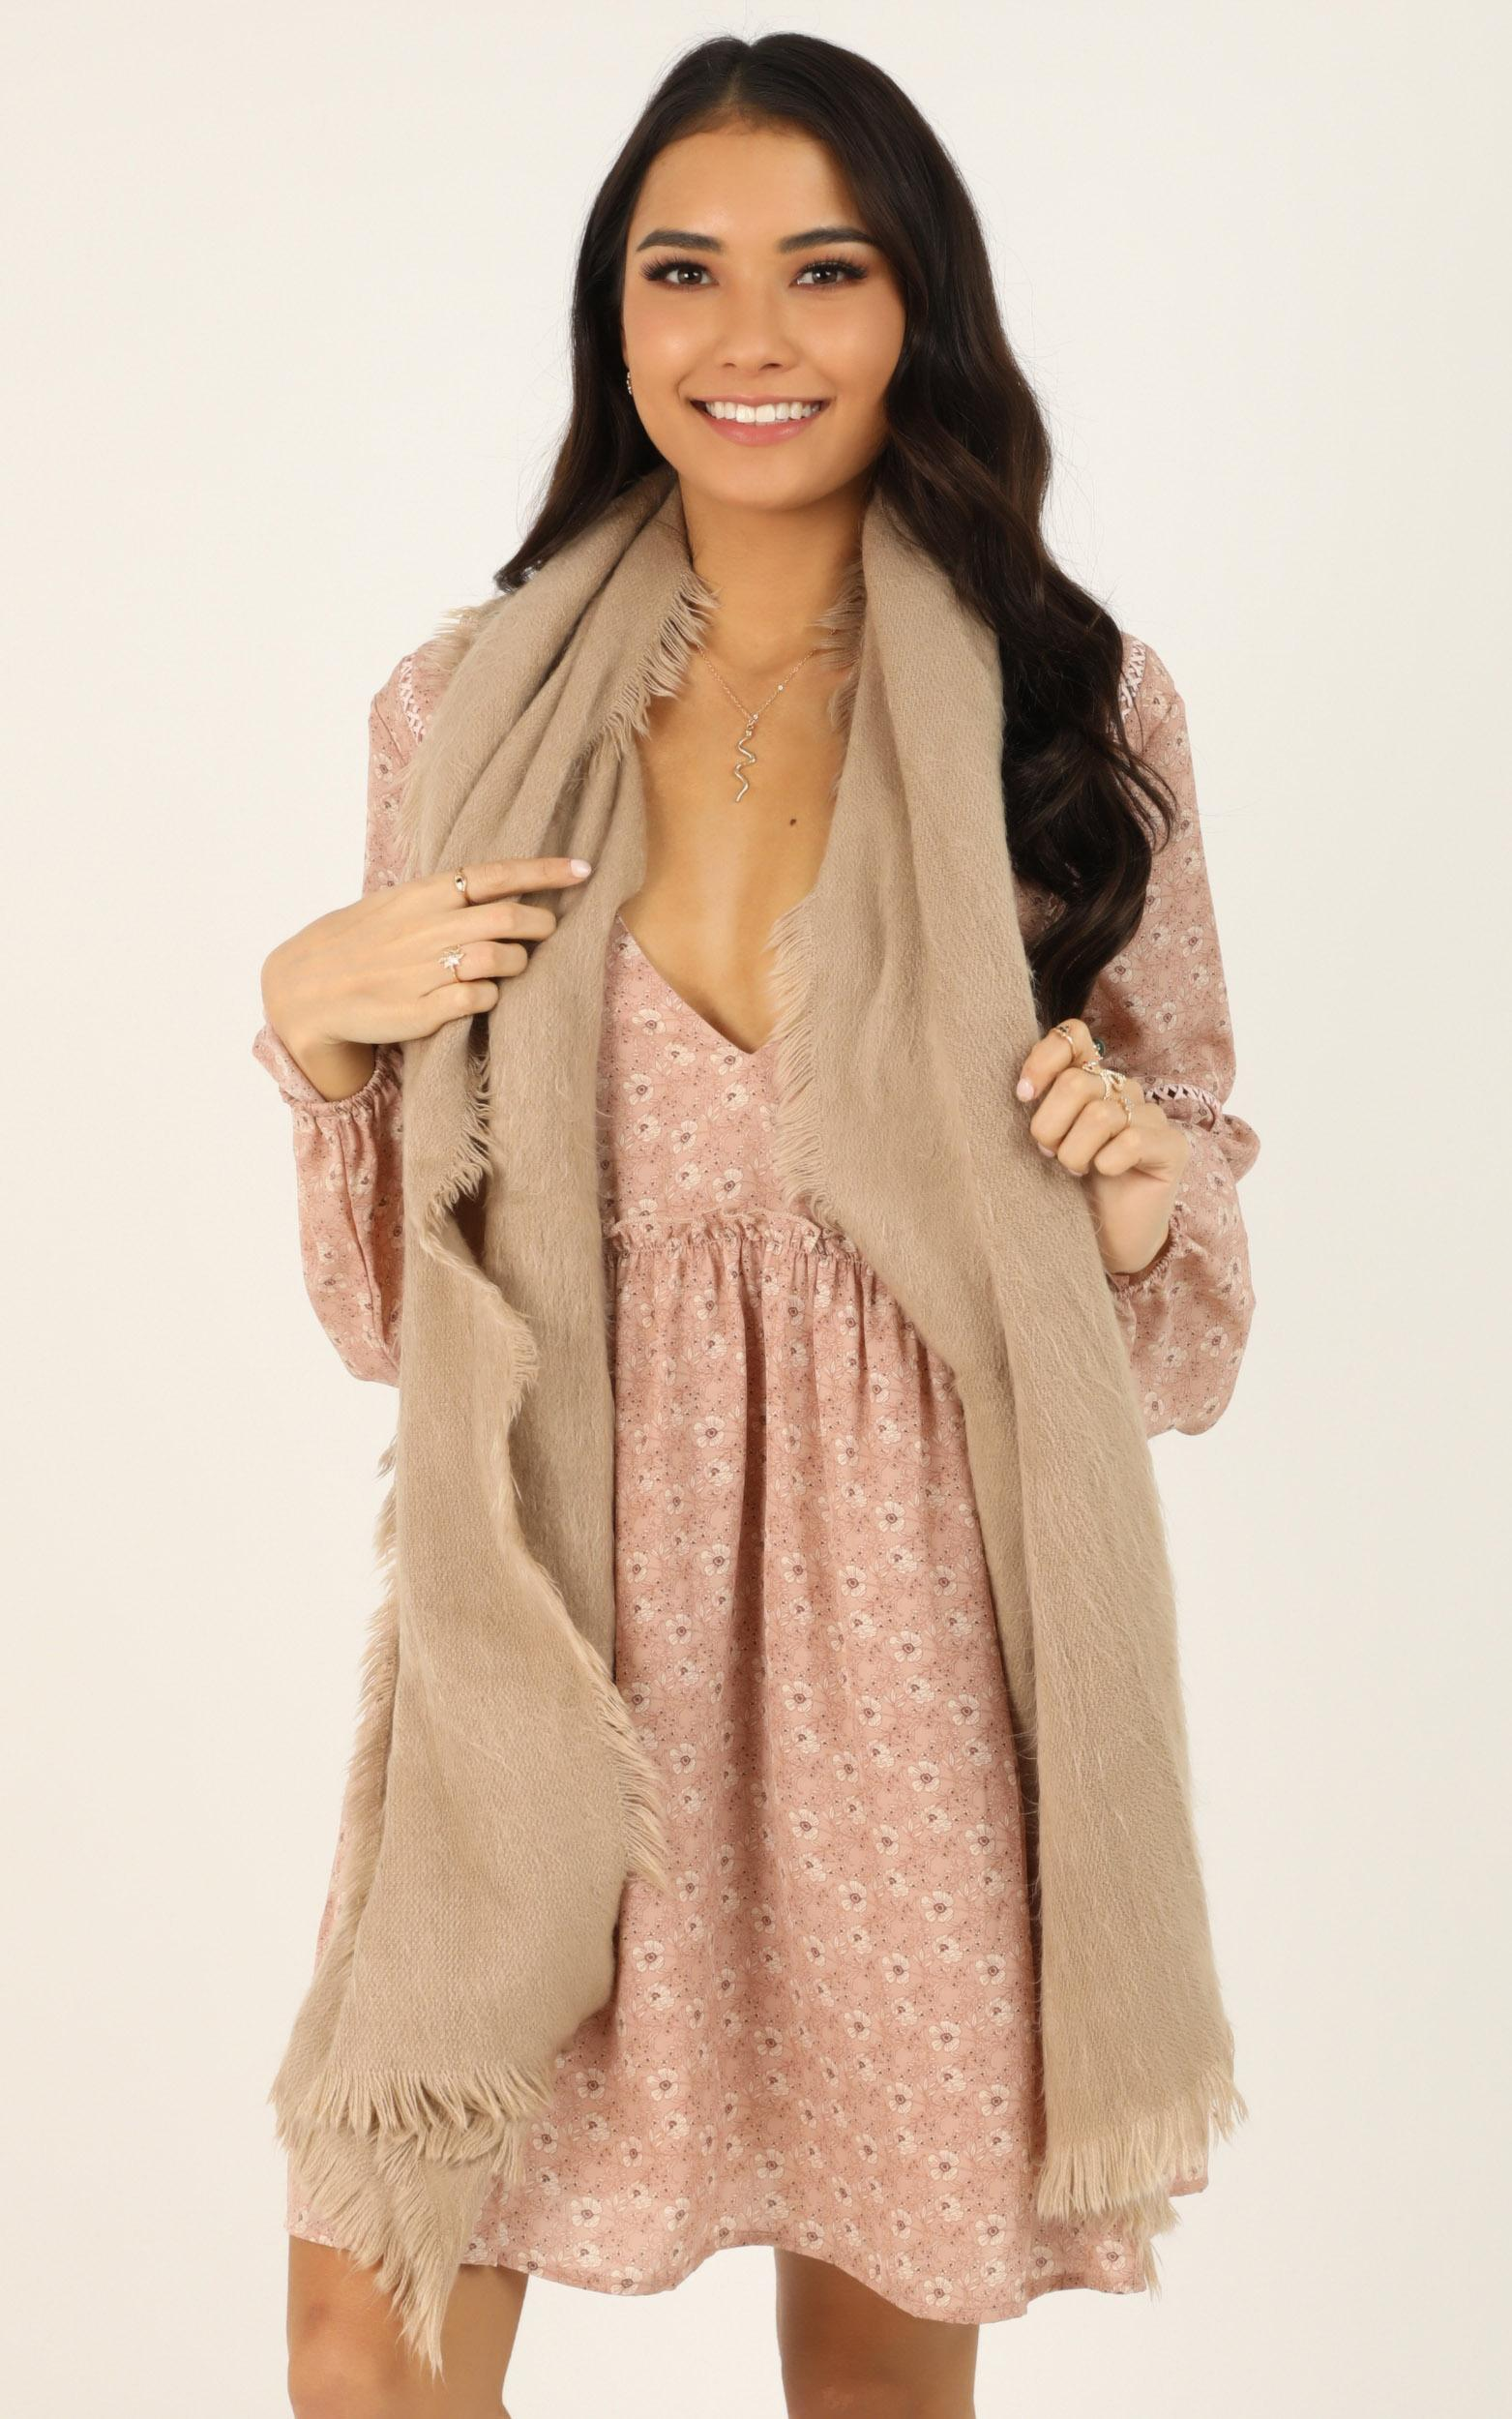 Keep In Touch Scarf In Mocha, Mocha, hi-res image number null